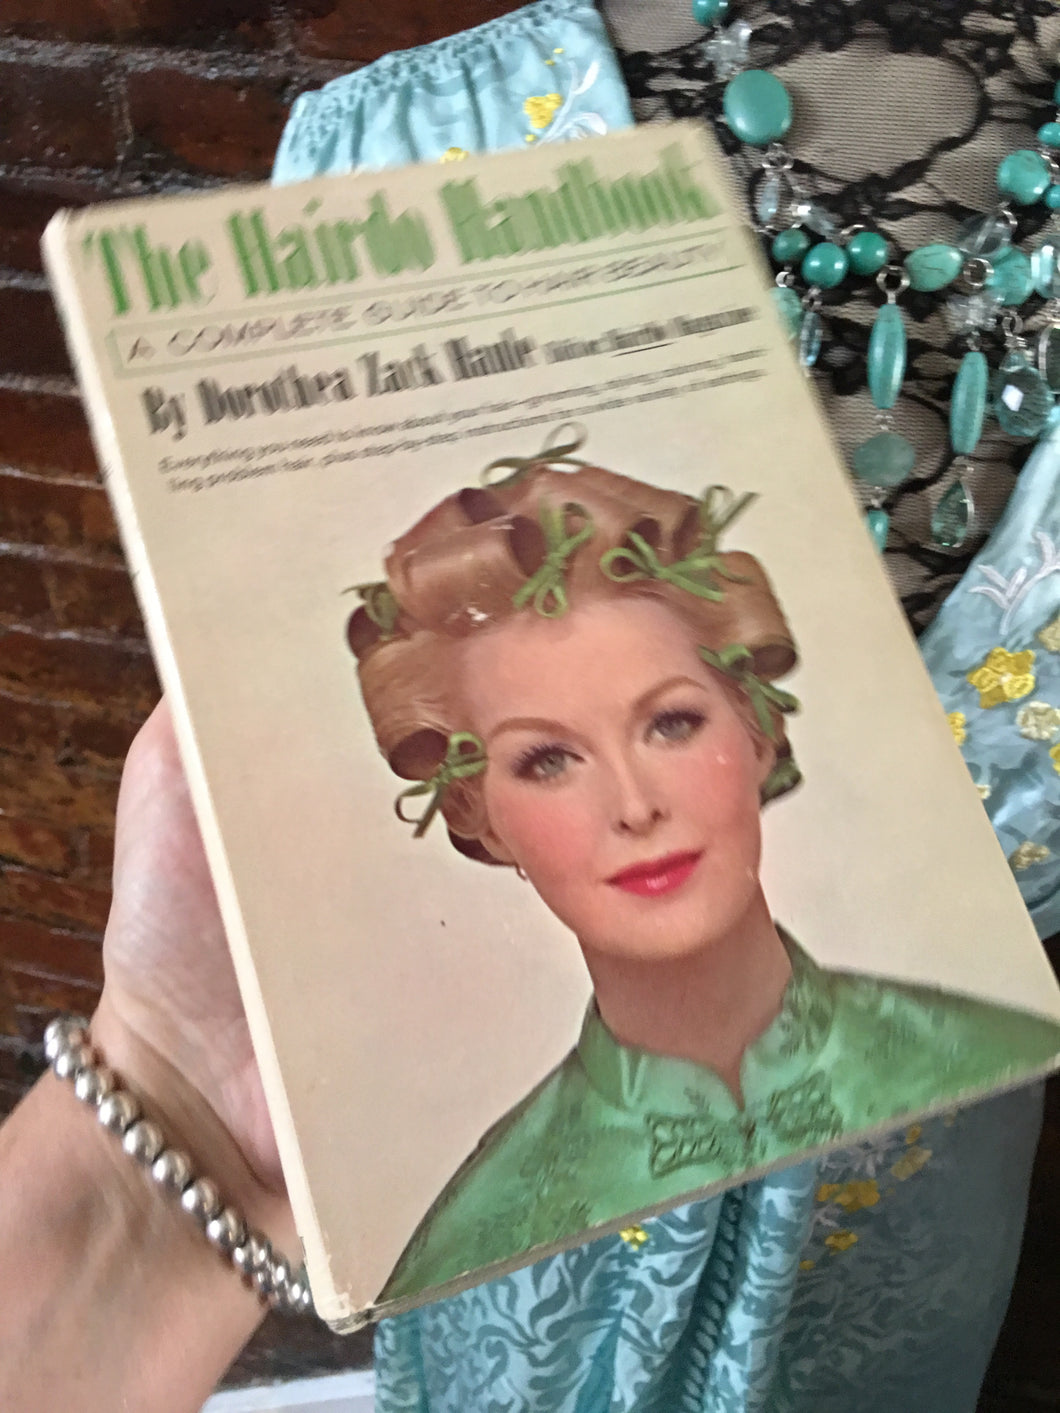 The Hairdoo Handbook- the complete guide to hair beauty, 1964, Dorothea Zack Hanle